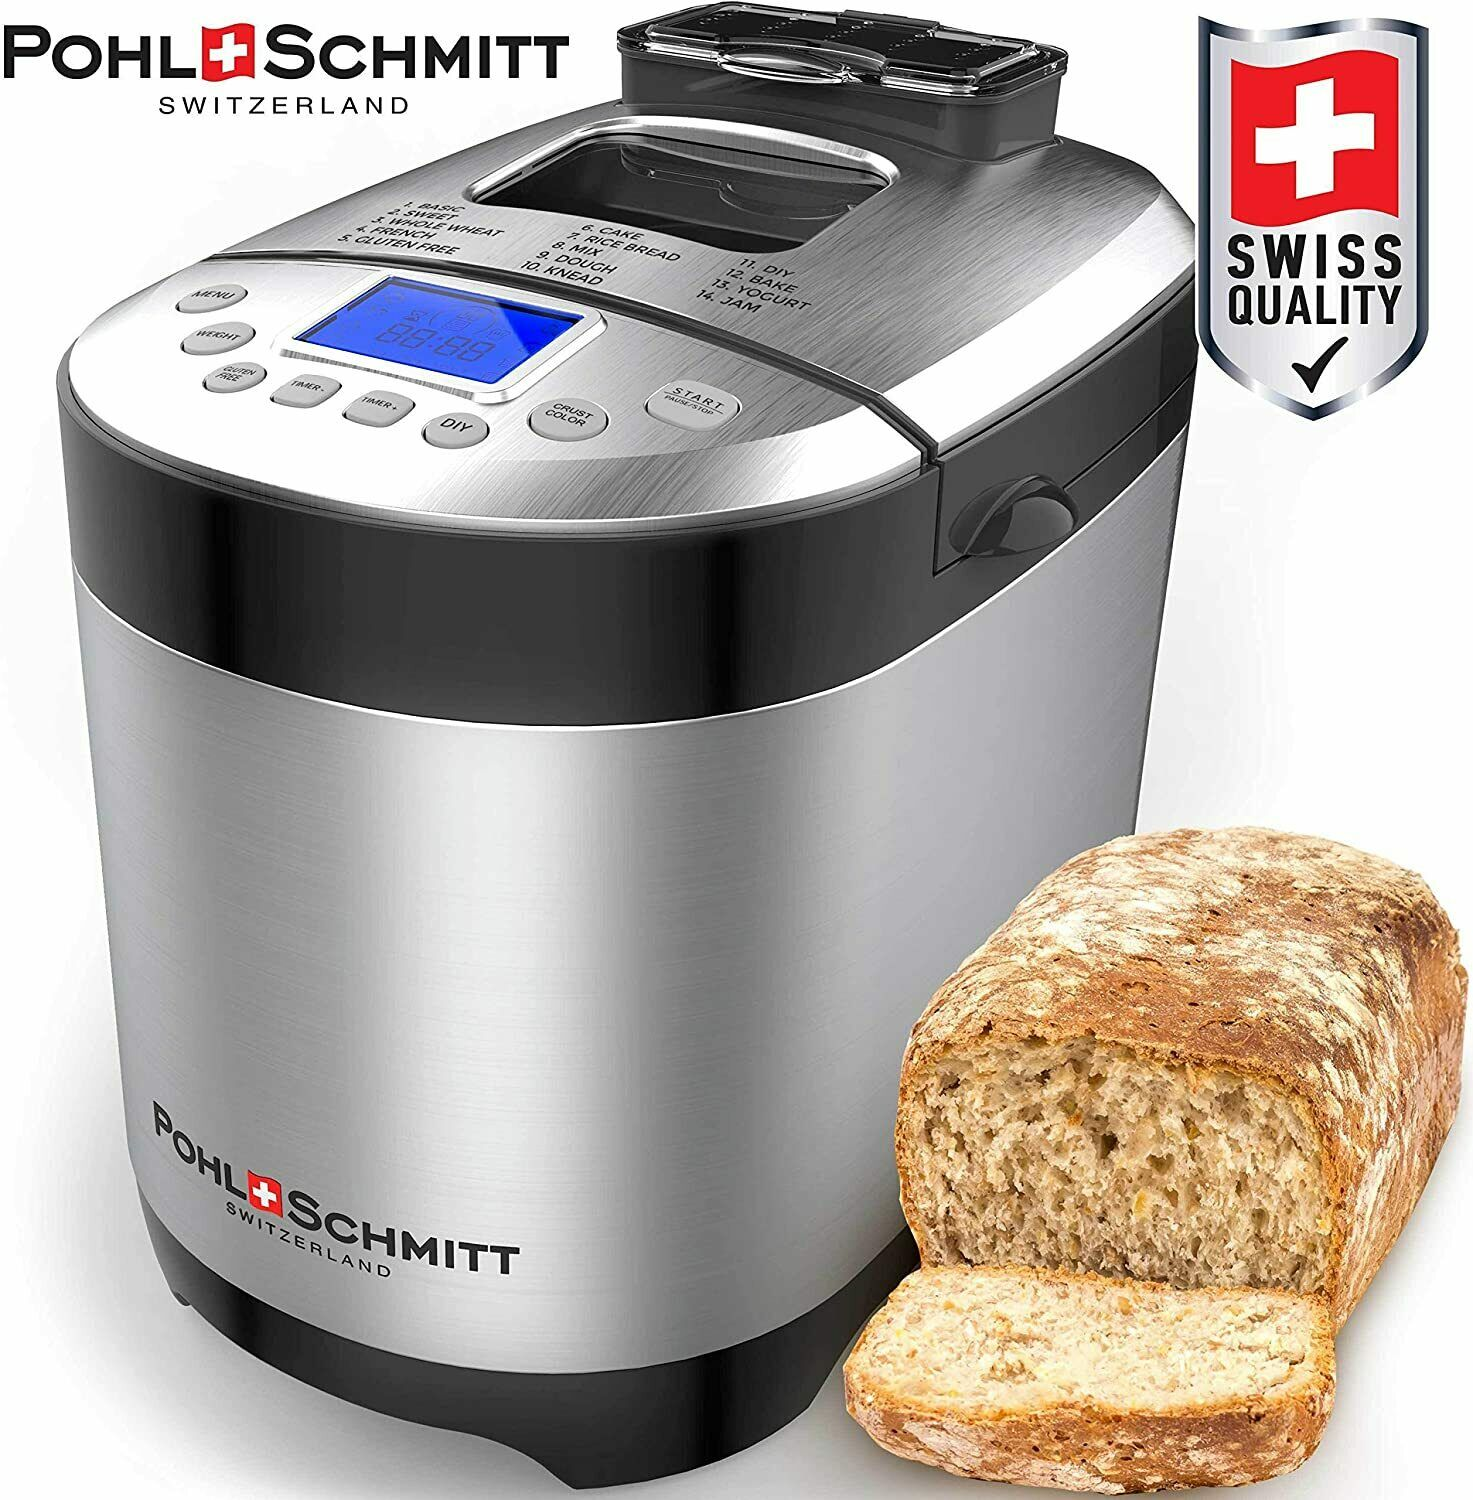 17 in 1 stainless steel automatic bread